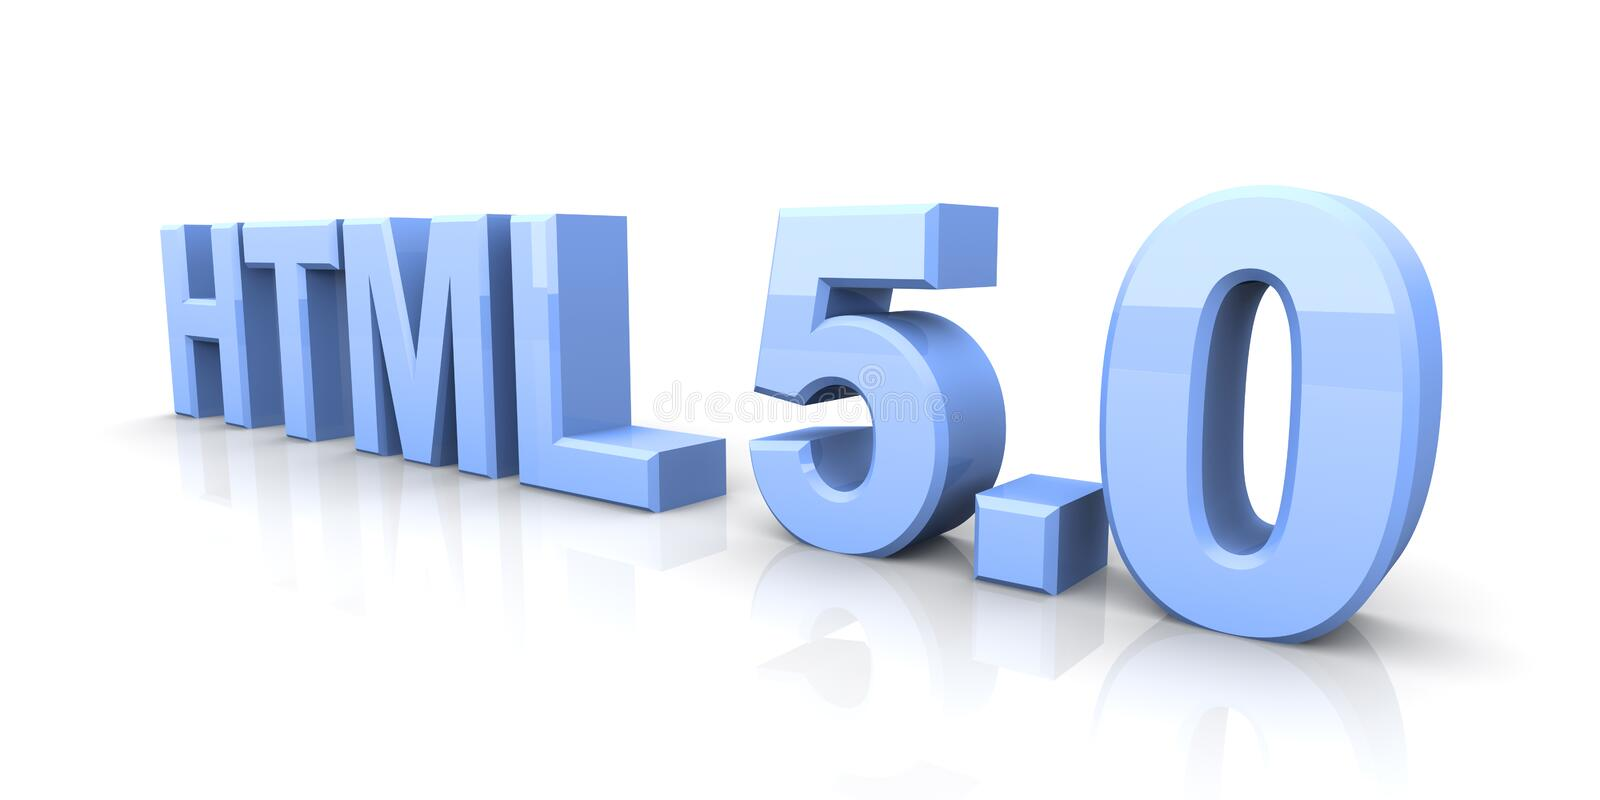 Download HTML 5.0 stock illustration. Illustration of isolated - 18920494